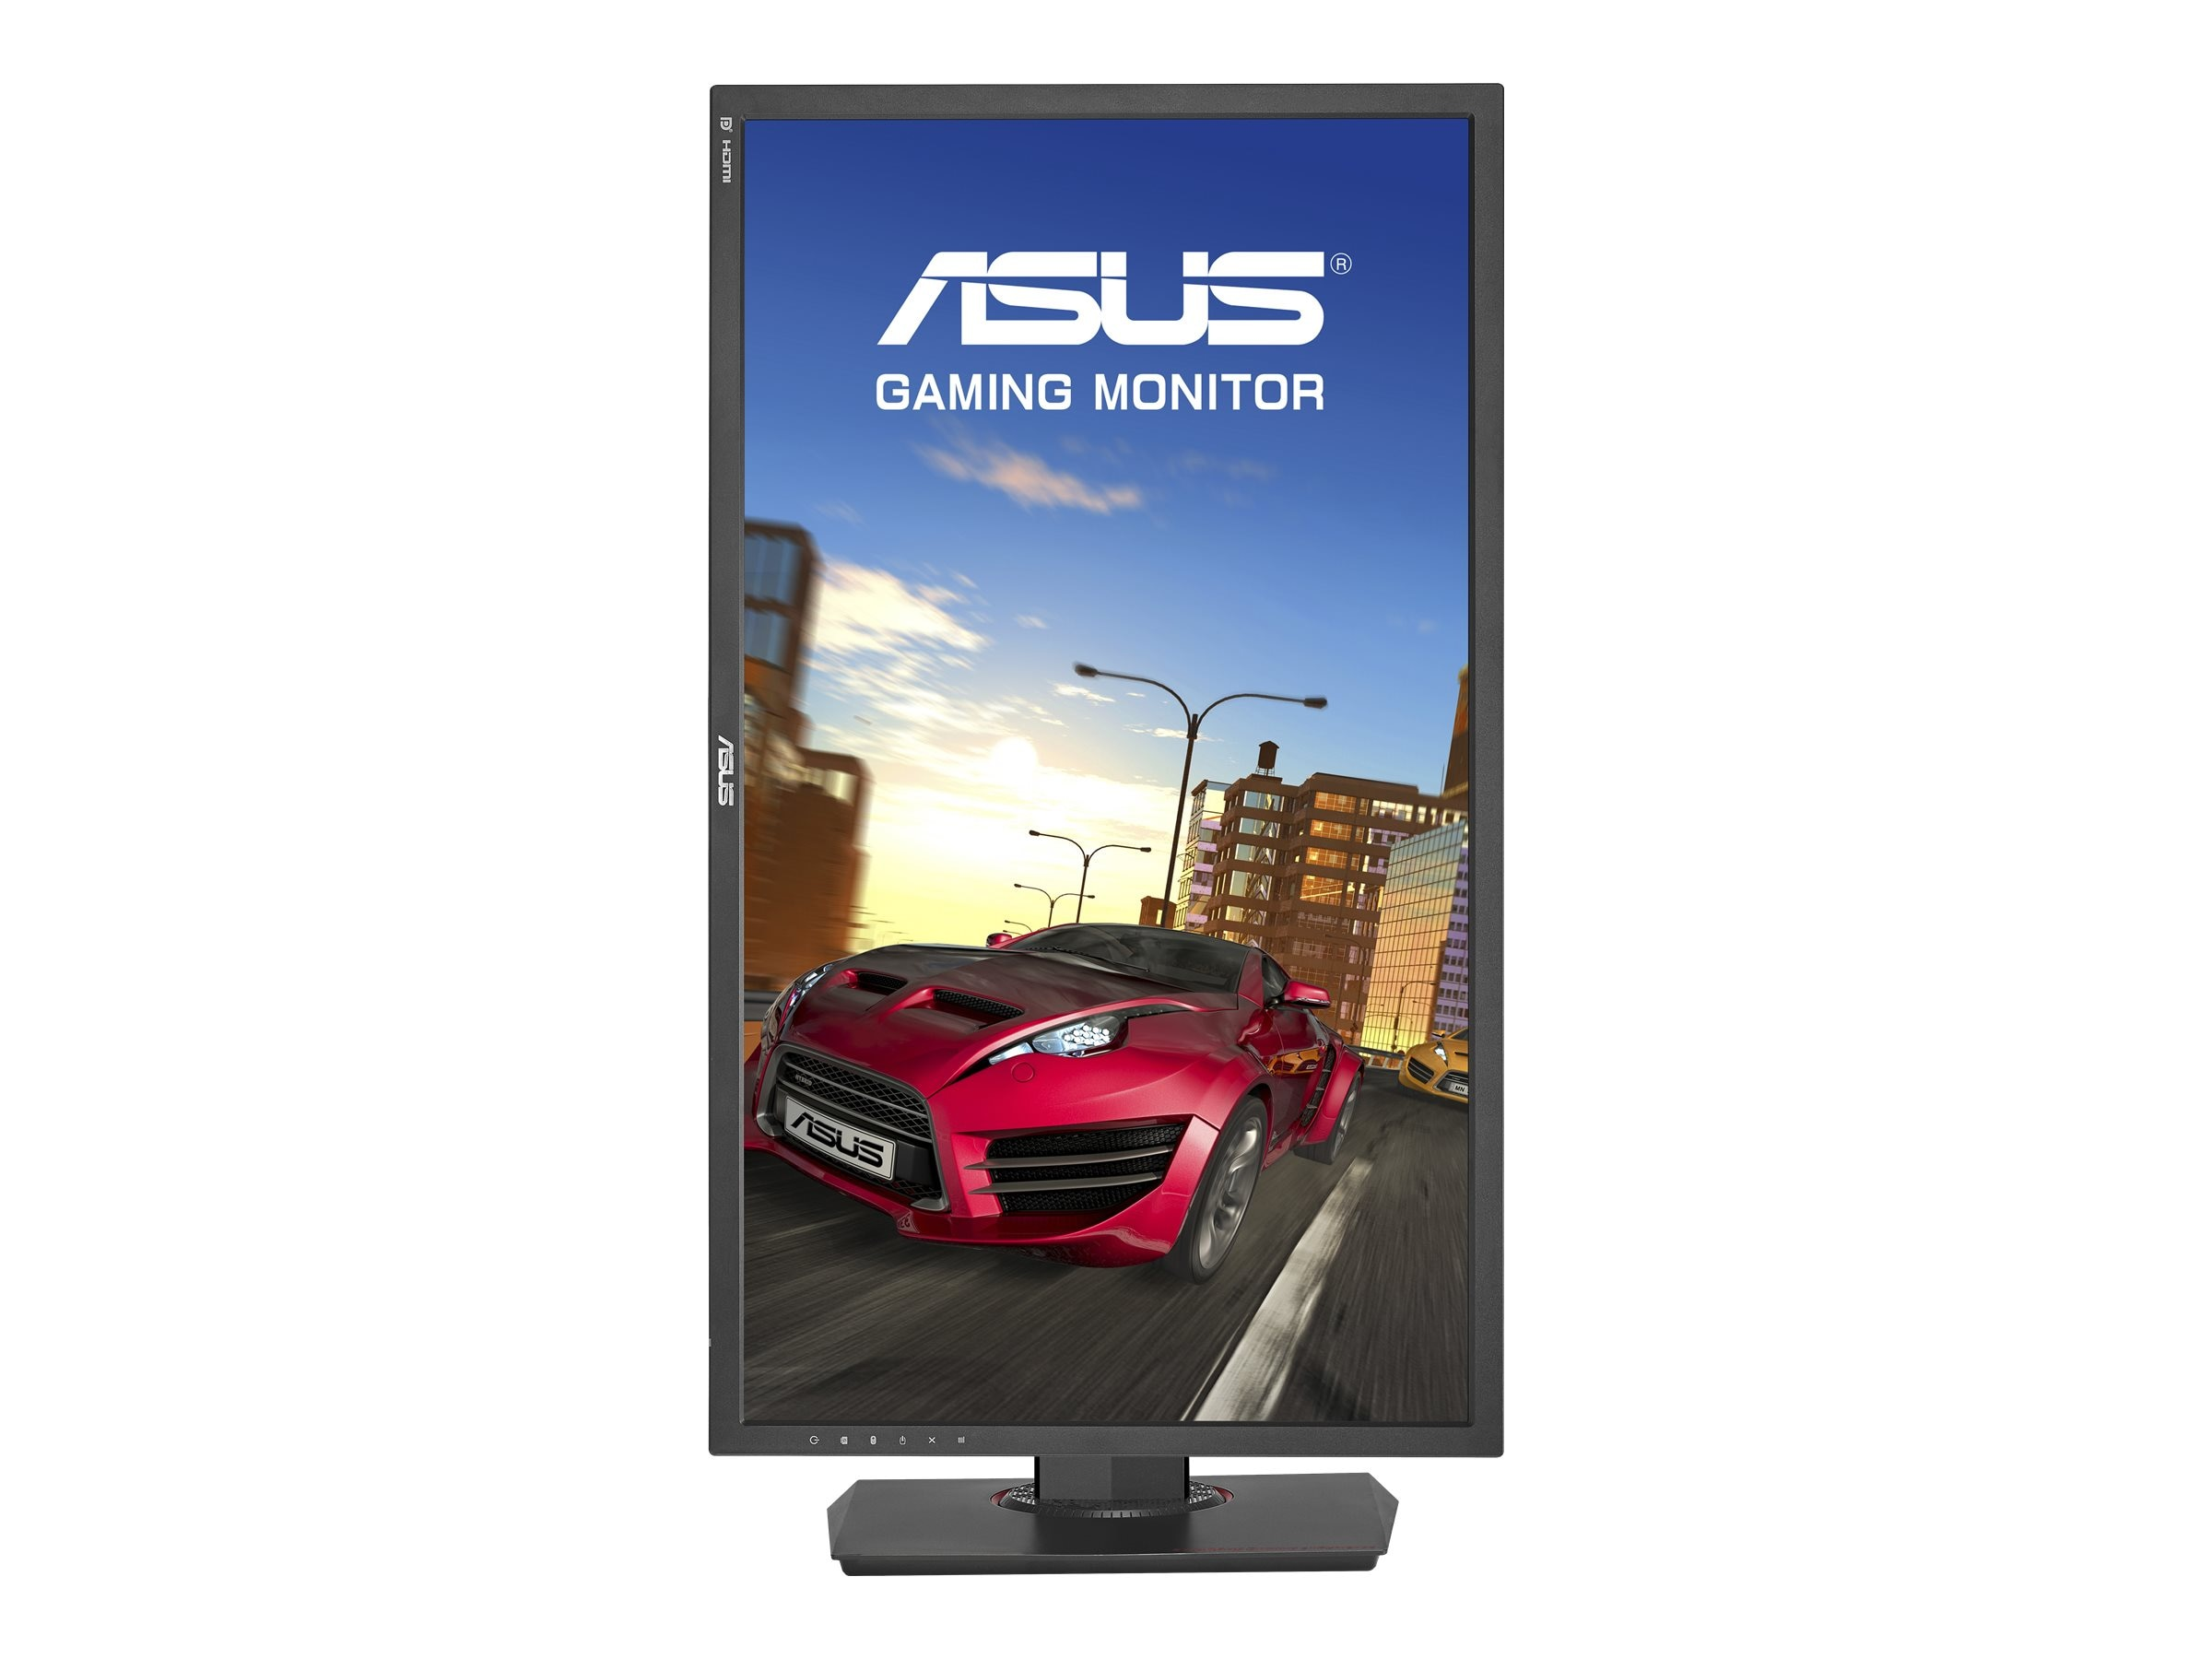 Asus 28 MG28UQ 4K UHD LED-LCD Gaming Monitor, Black, MG28UQ, 31585136, Monitors - LED-LCD